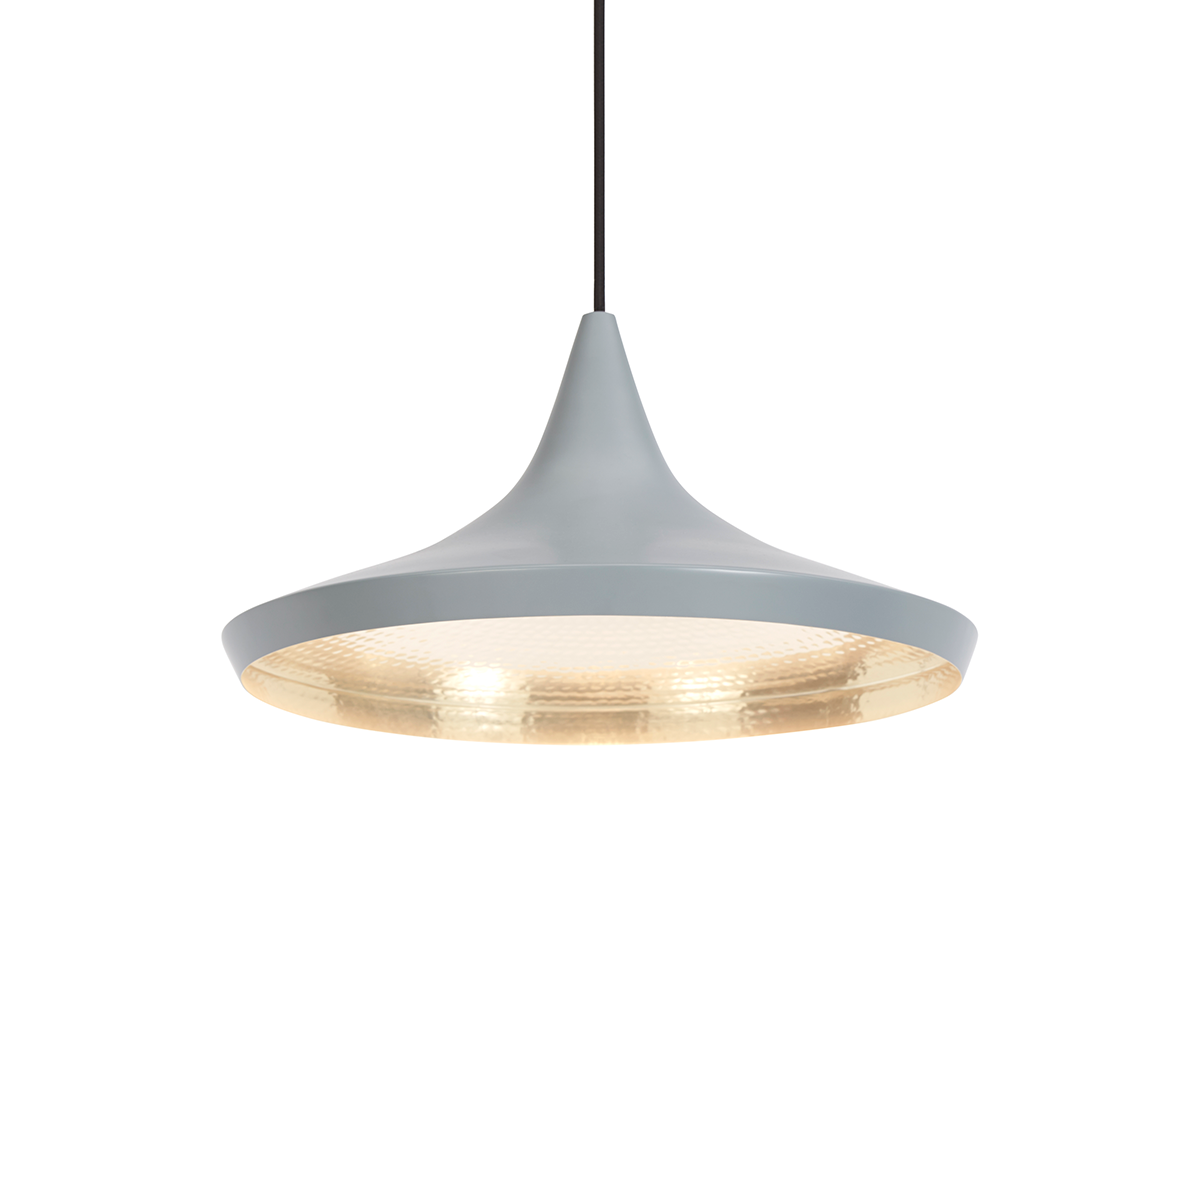 Tom Dixon Beat Grey Light Series Suspension Lamp 黑澤 吊燈系列 藍灰色系